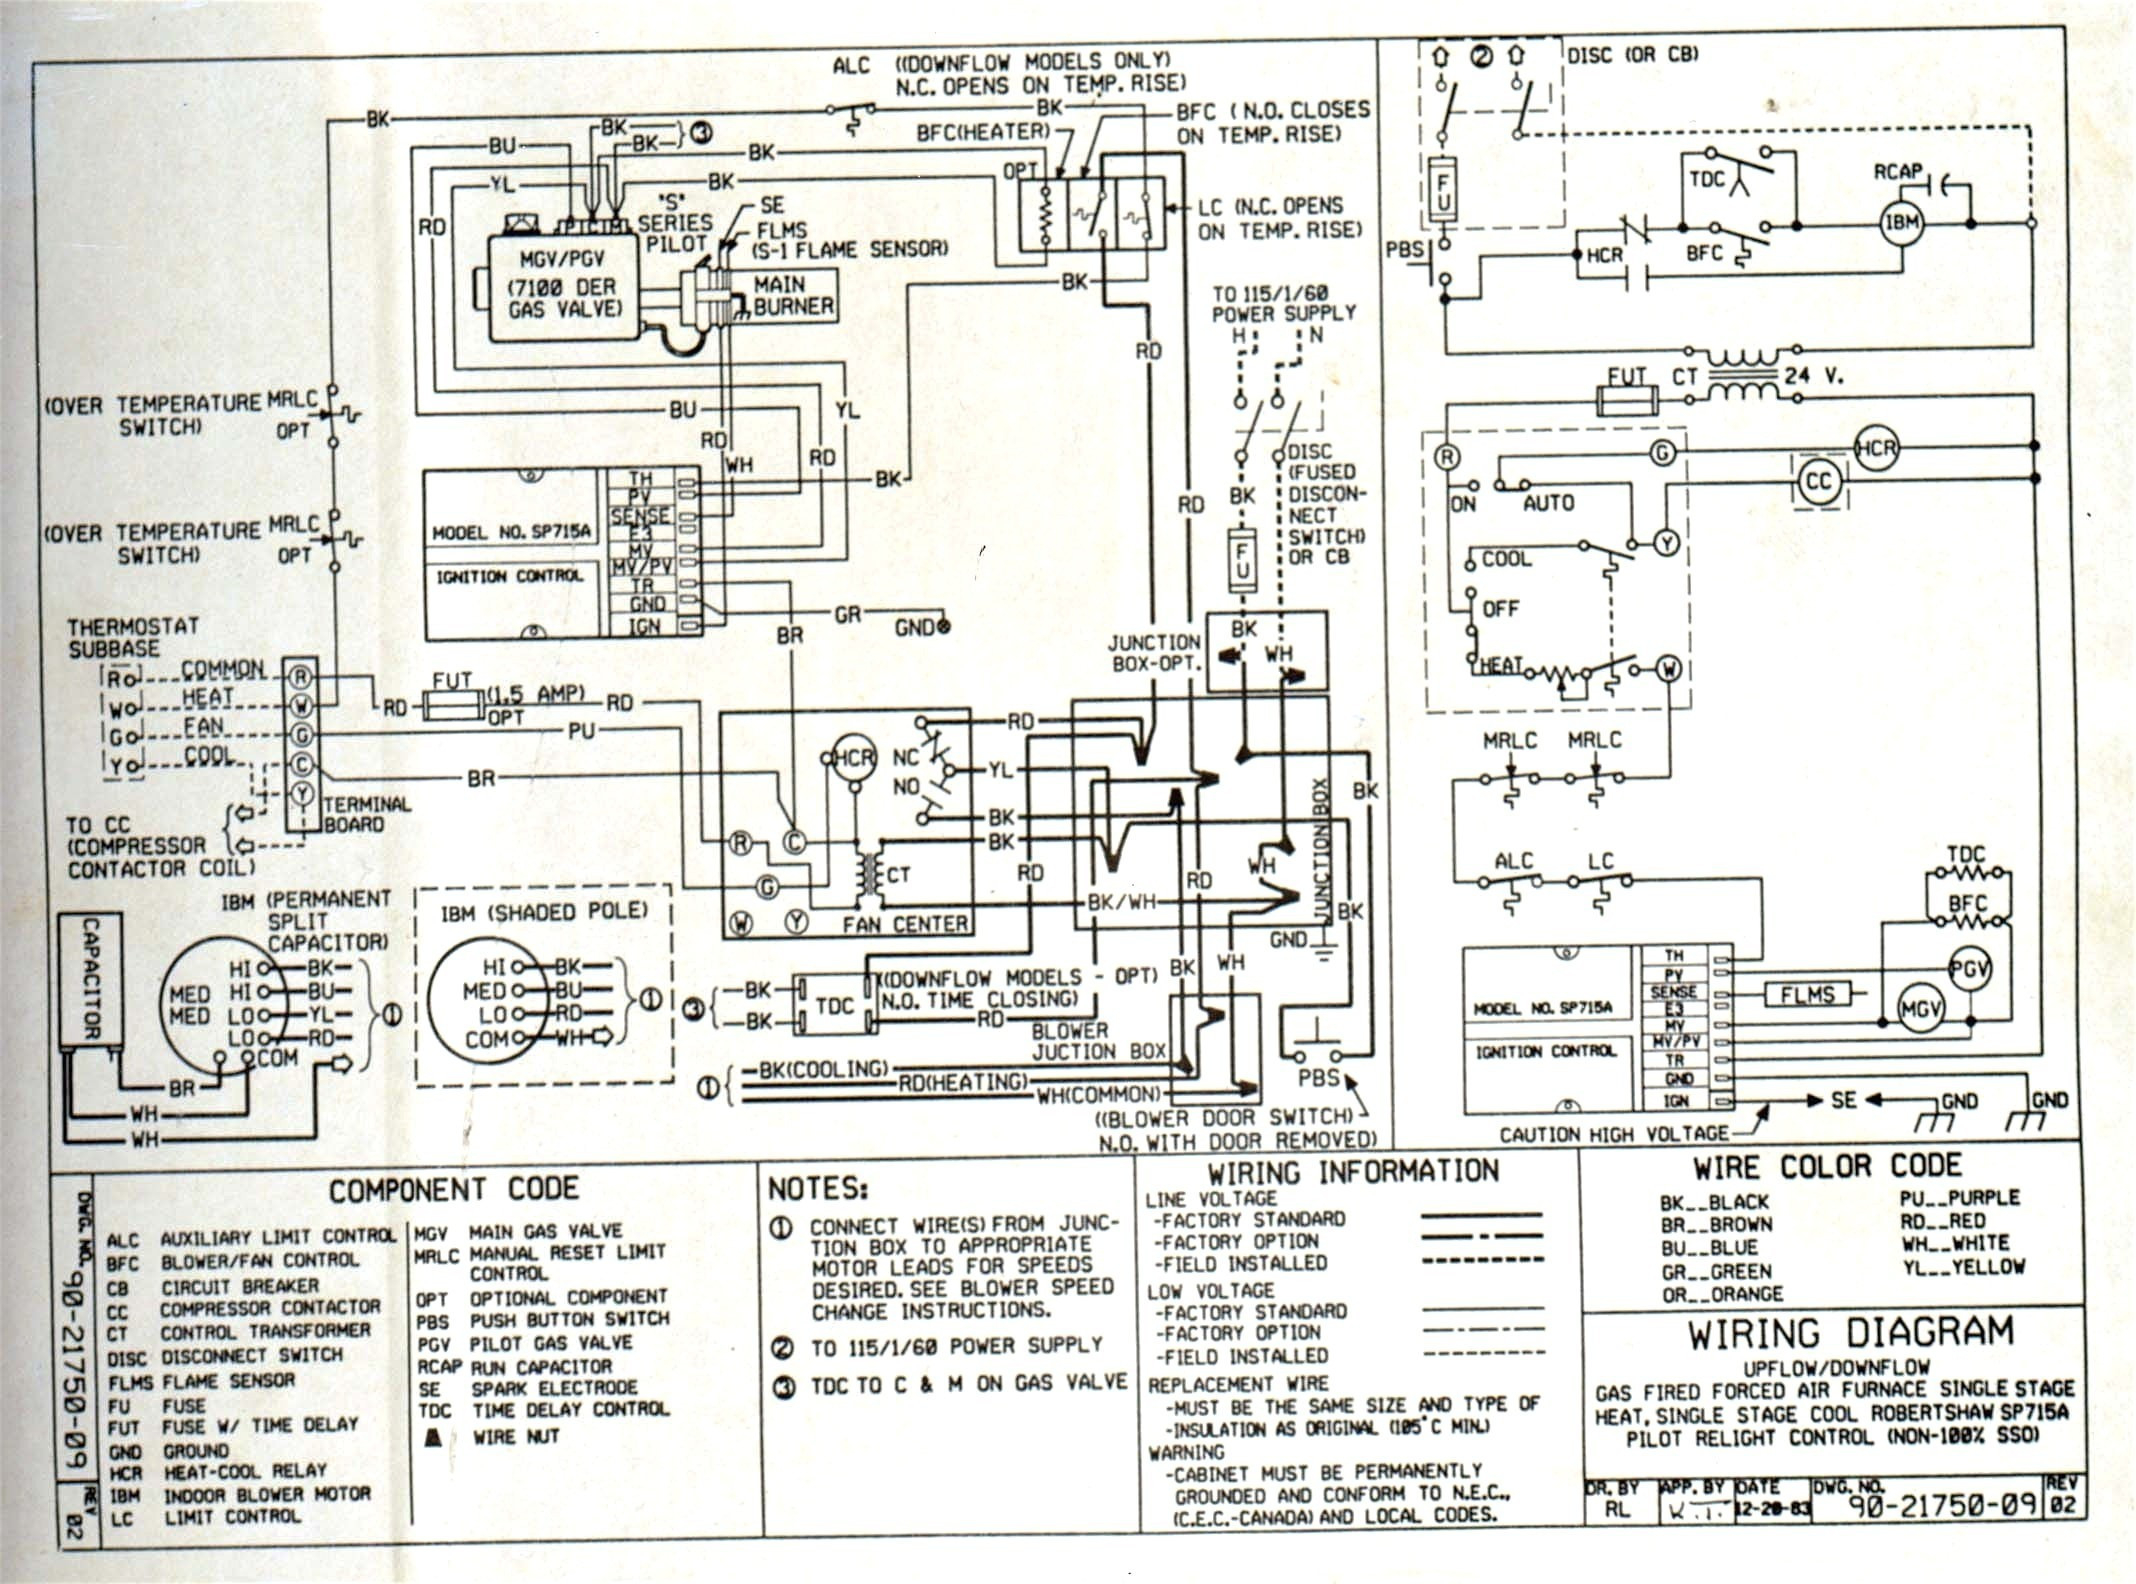 daikin mini split wiring diagram Collection-Wiring Diagram Ac Split Daikin Inverter Best Großzügig Daikin Mini Split Schaltplan Bilder Verdrahtungsideen 12-m